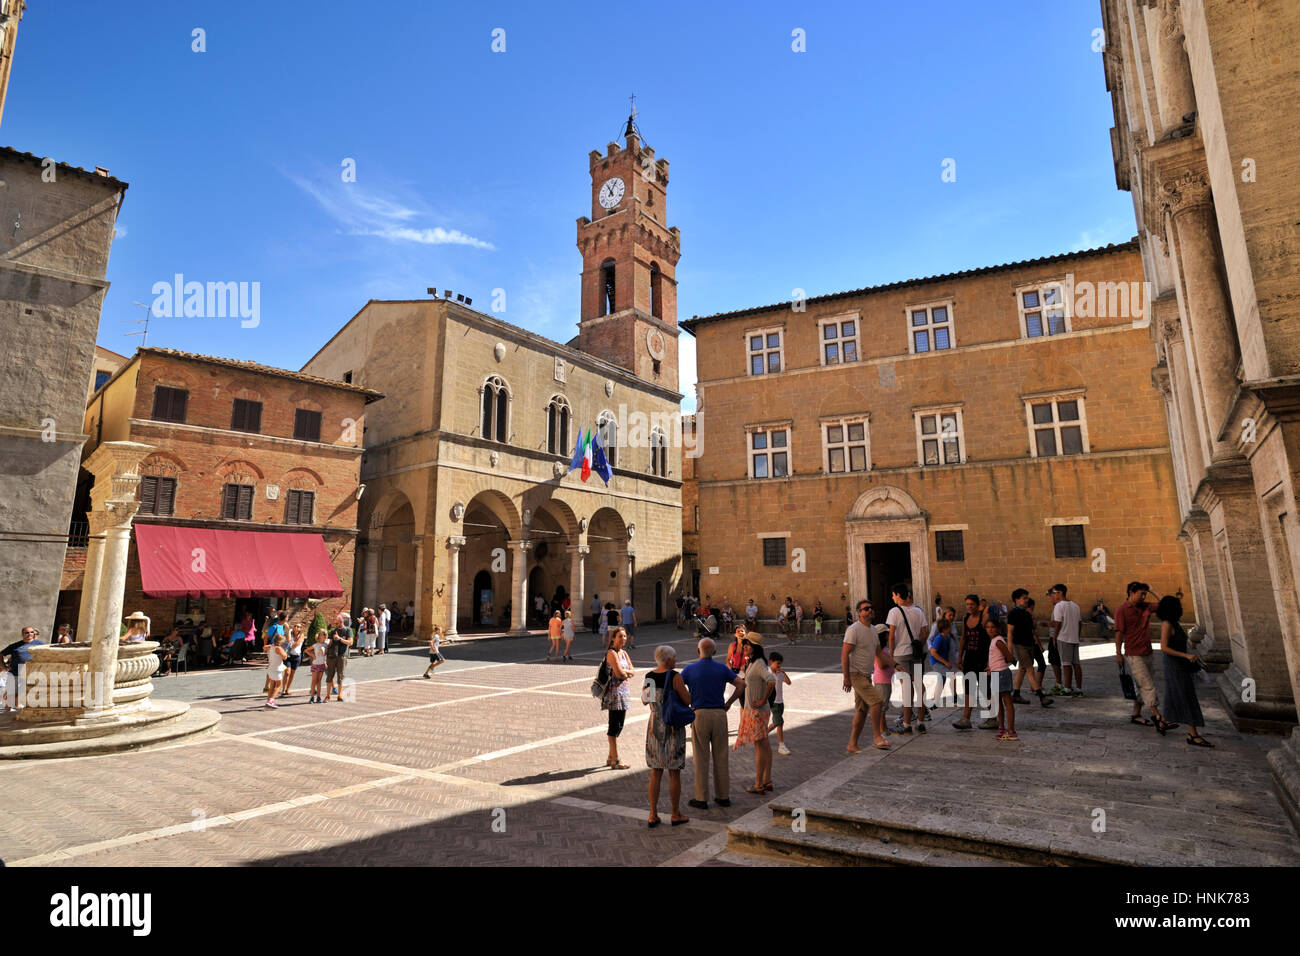 italy, tuscany, pienza, piazza pio II, townhall and bishop palace - Stock Image